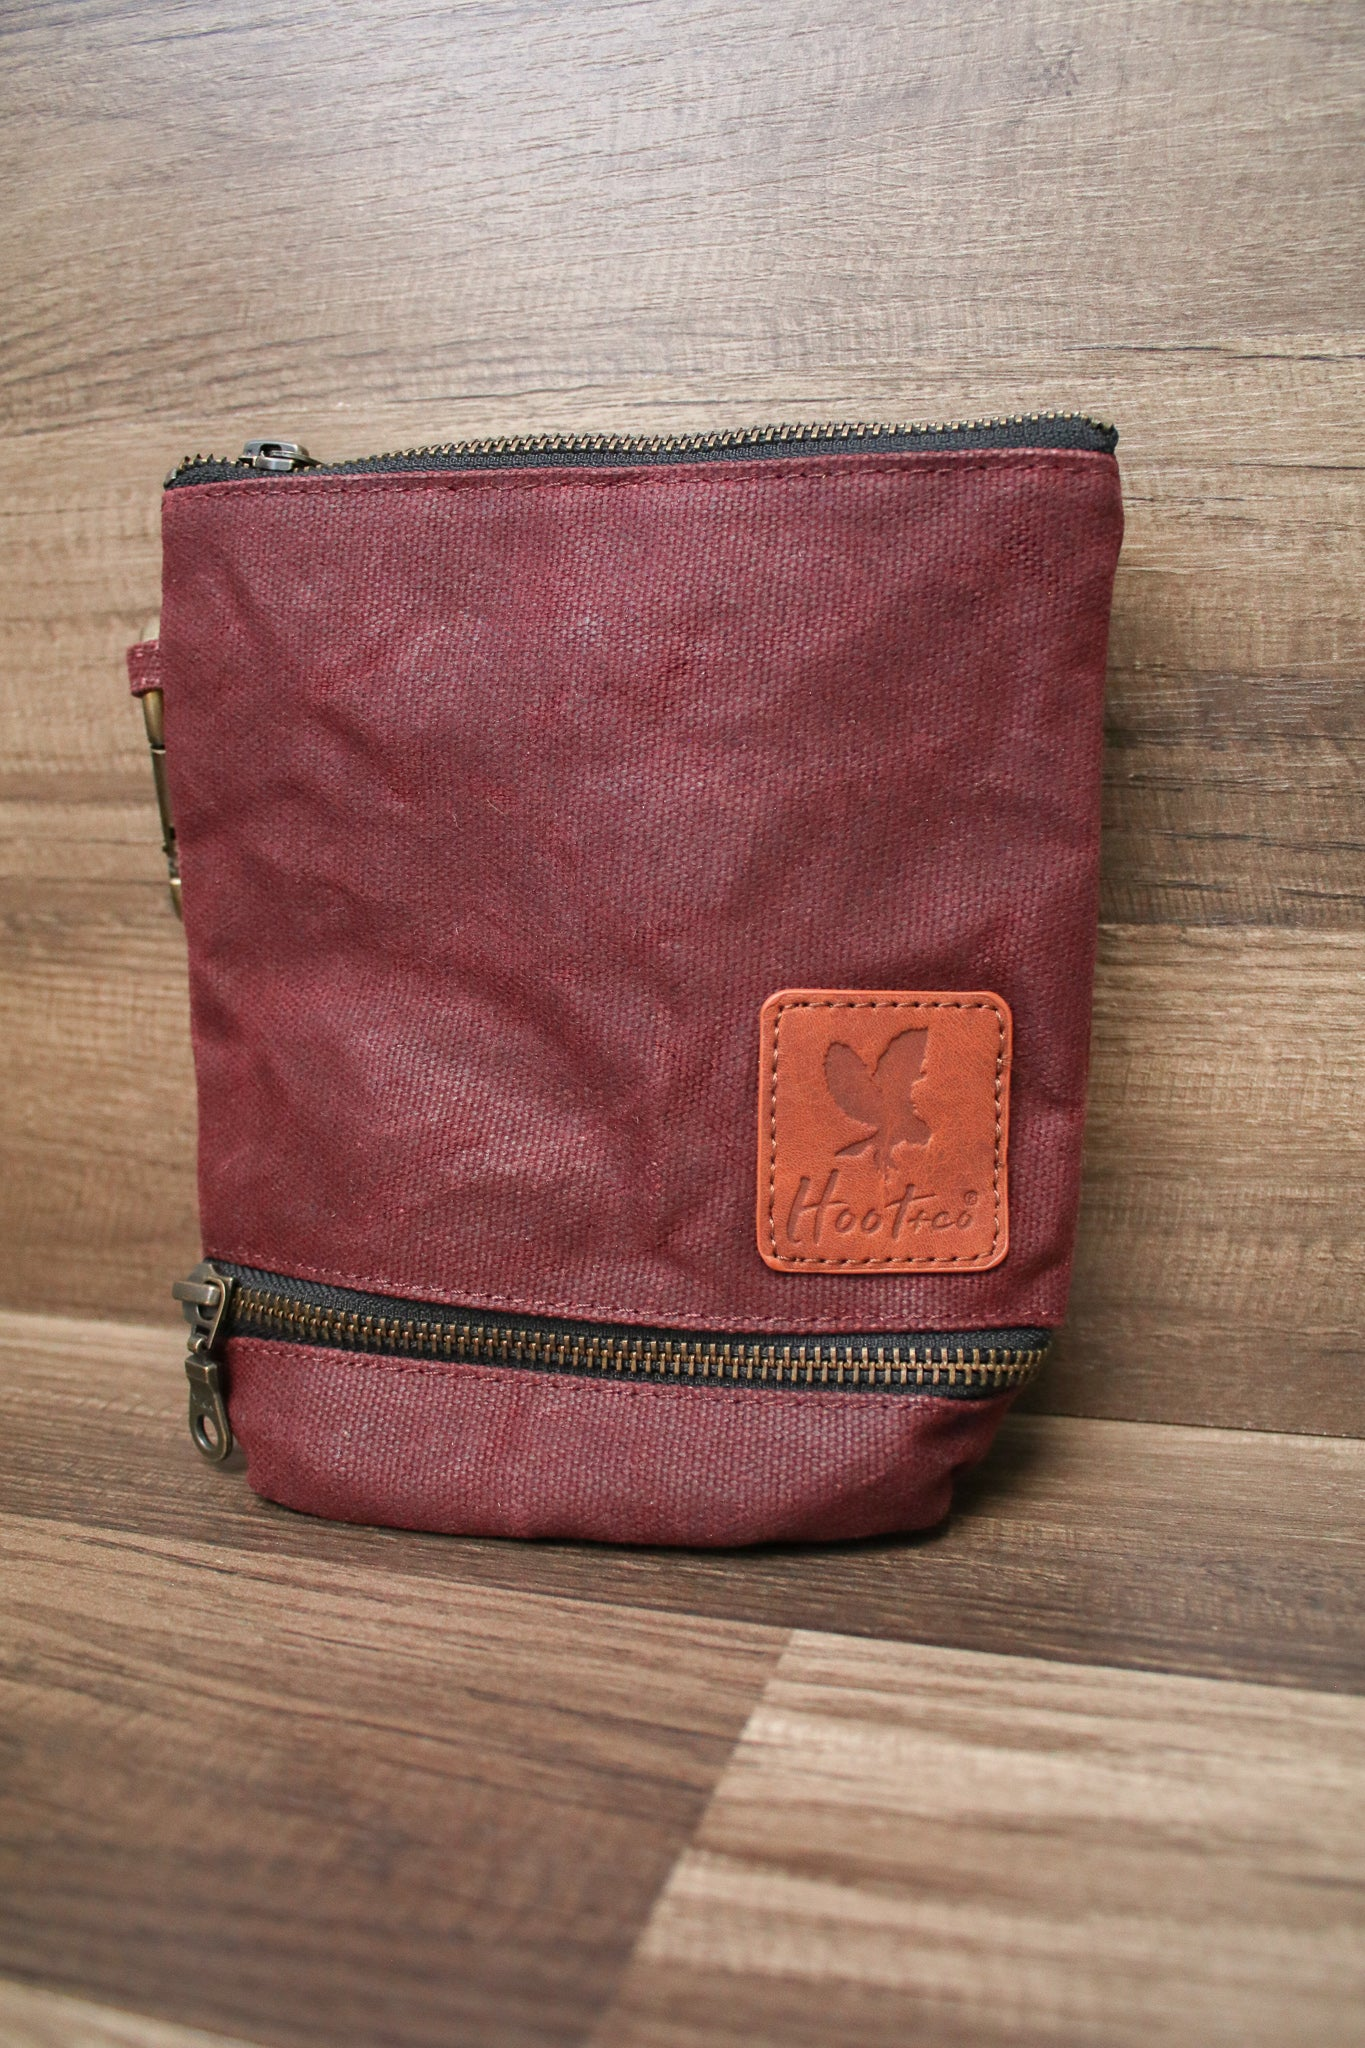 Waxed Canvas Combo Bag Holder - Plum